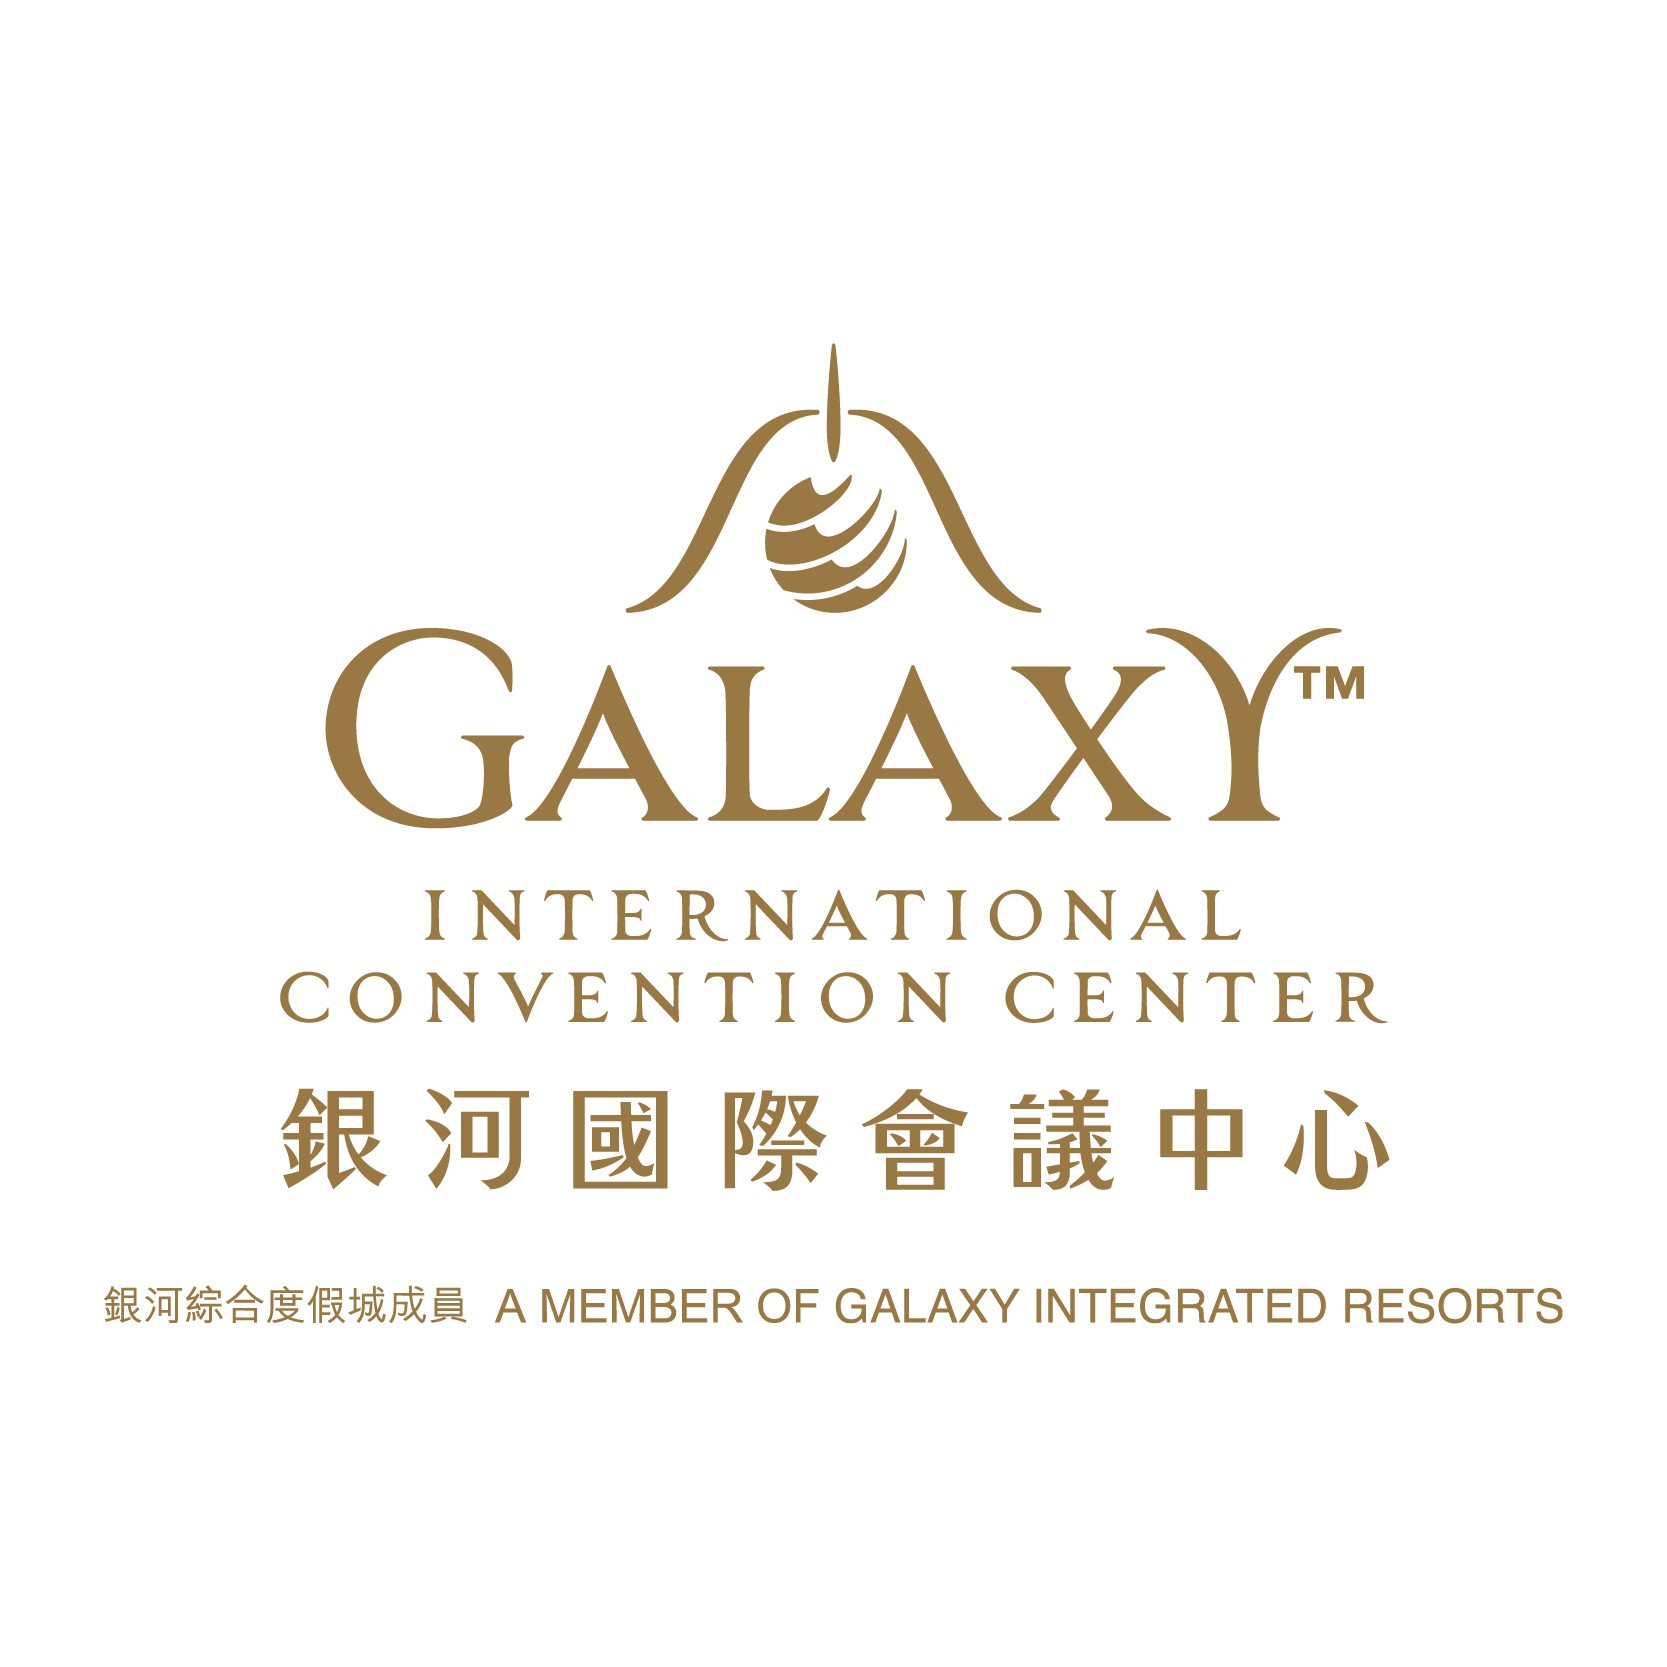 Galaxy Integrated Resorts introduces GICC and the precincts latest MICE offerings in Macau at ITCM China